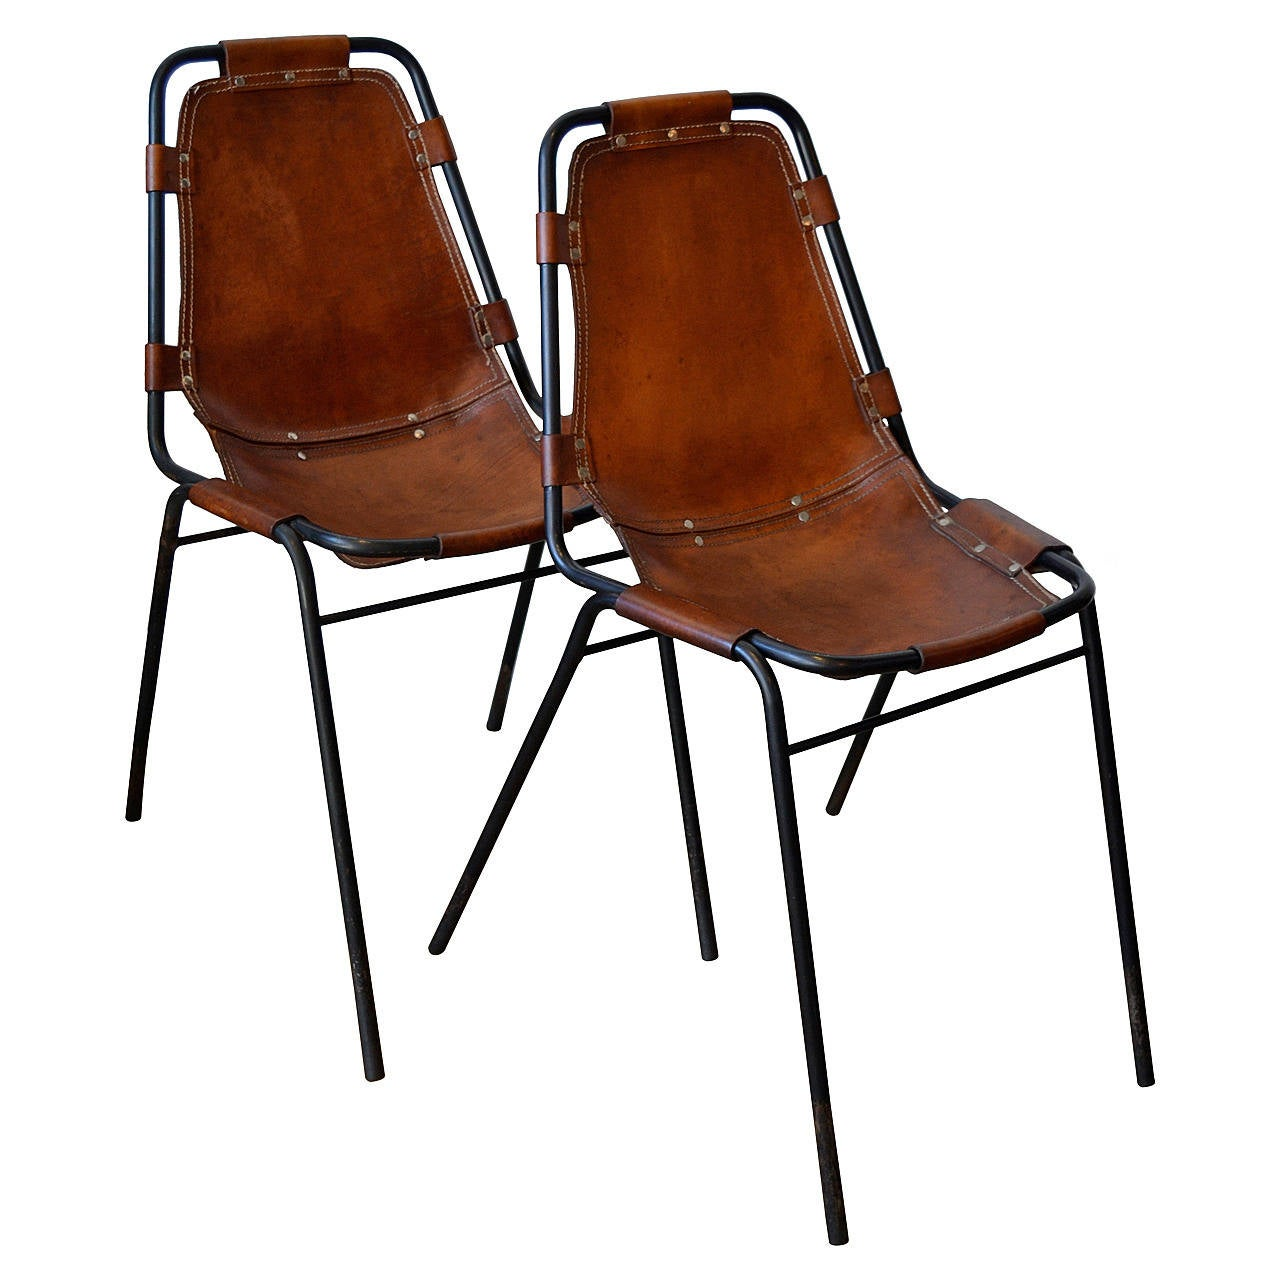 Charlotte Perriand Quot Les Arcs Quot Metal And Leather Side